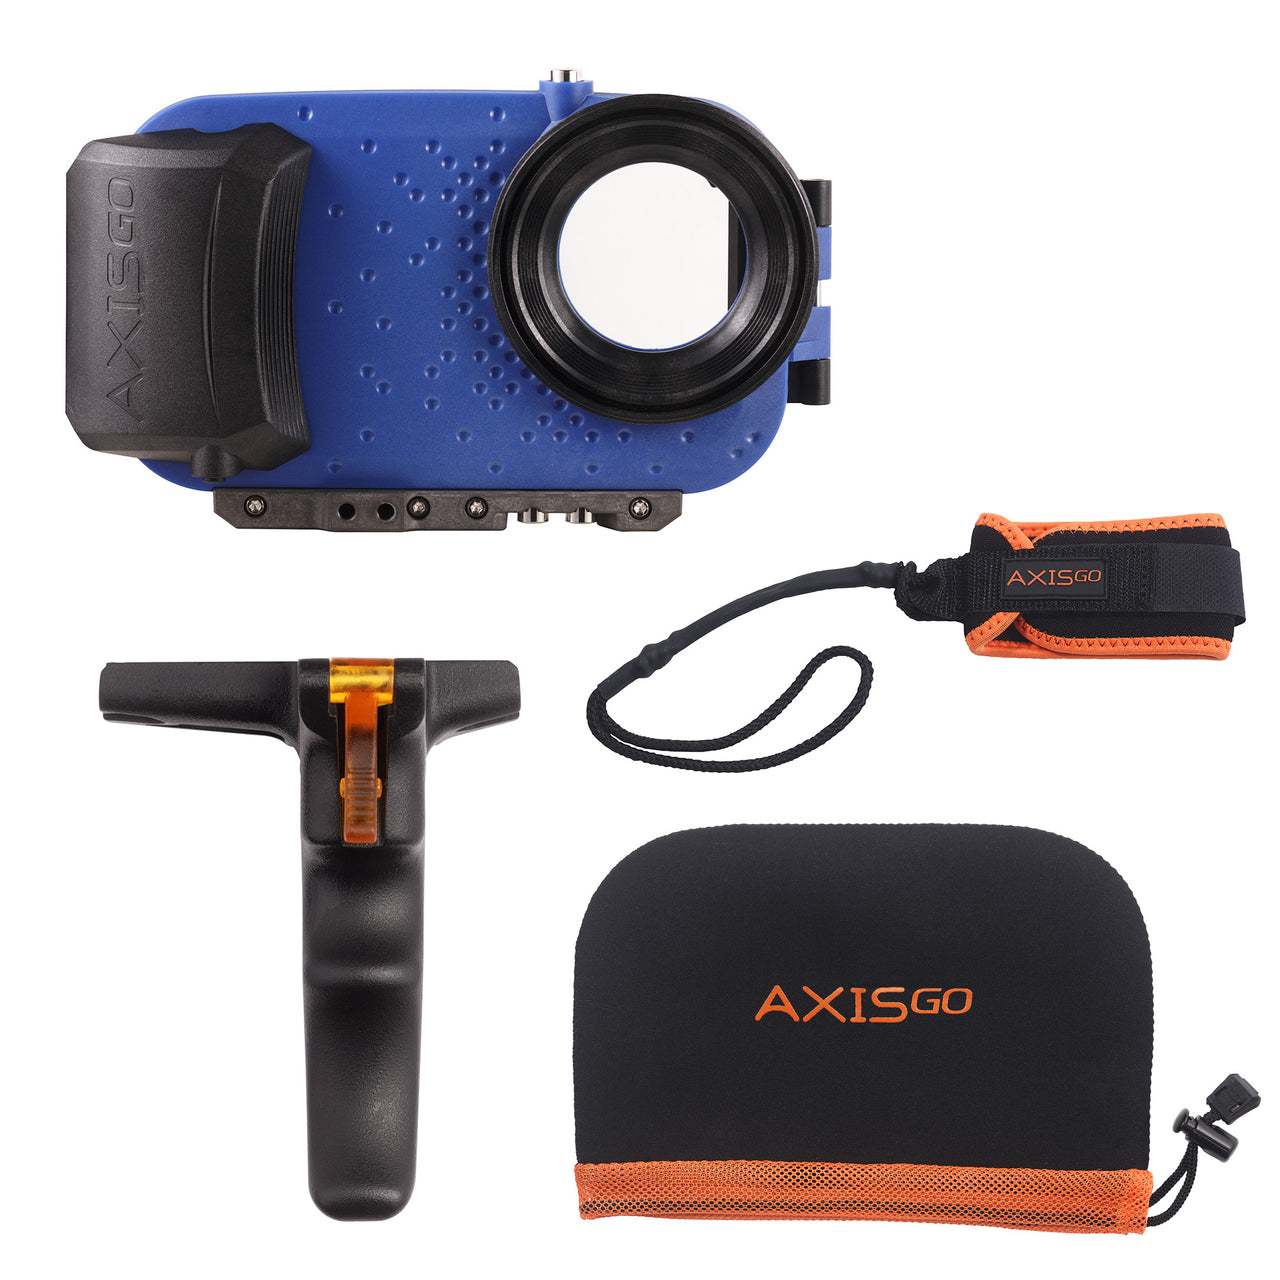 AxisGO iPhone 11 Action Kit for iPhone 11, featuring a blue water hosing for iphone 11, a black pistol grip, black arm band, and a black case.